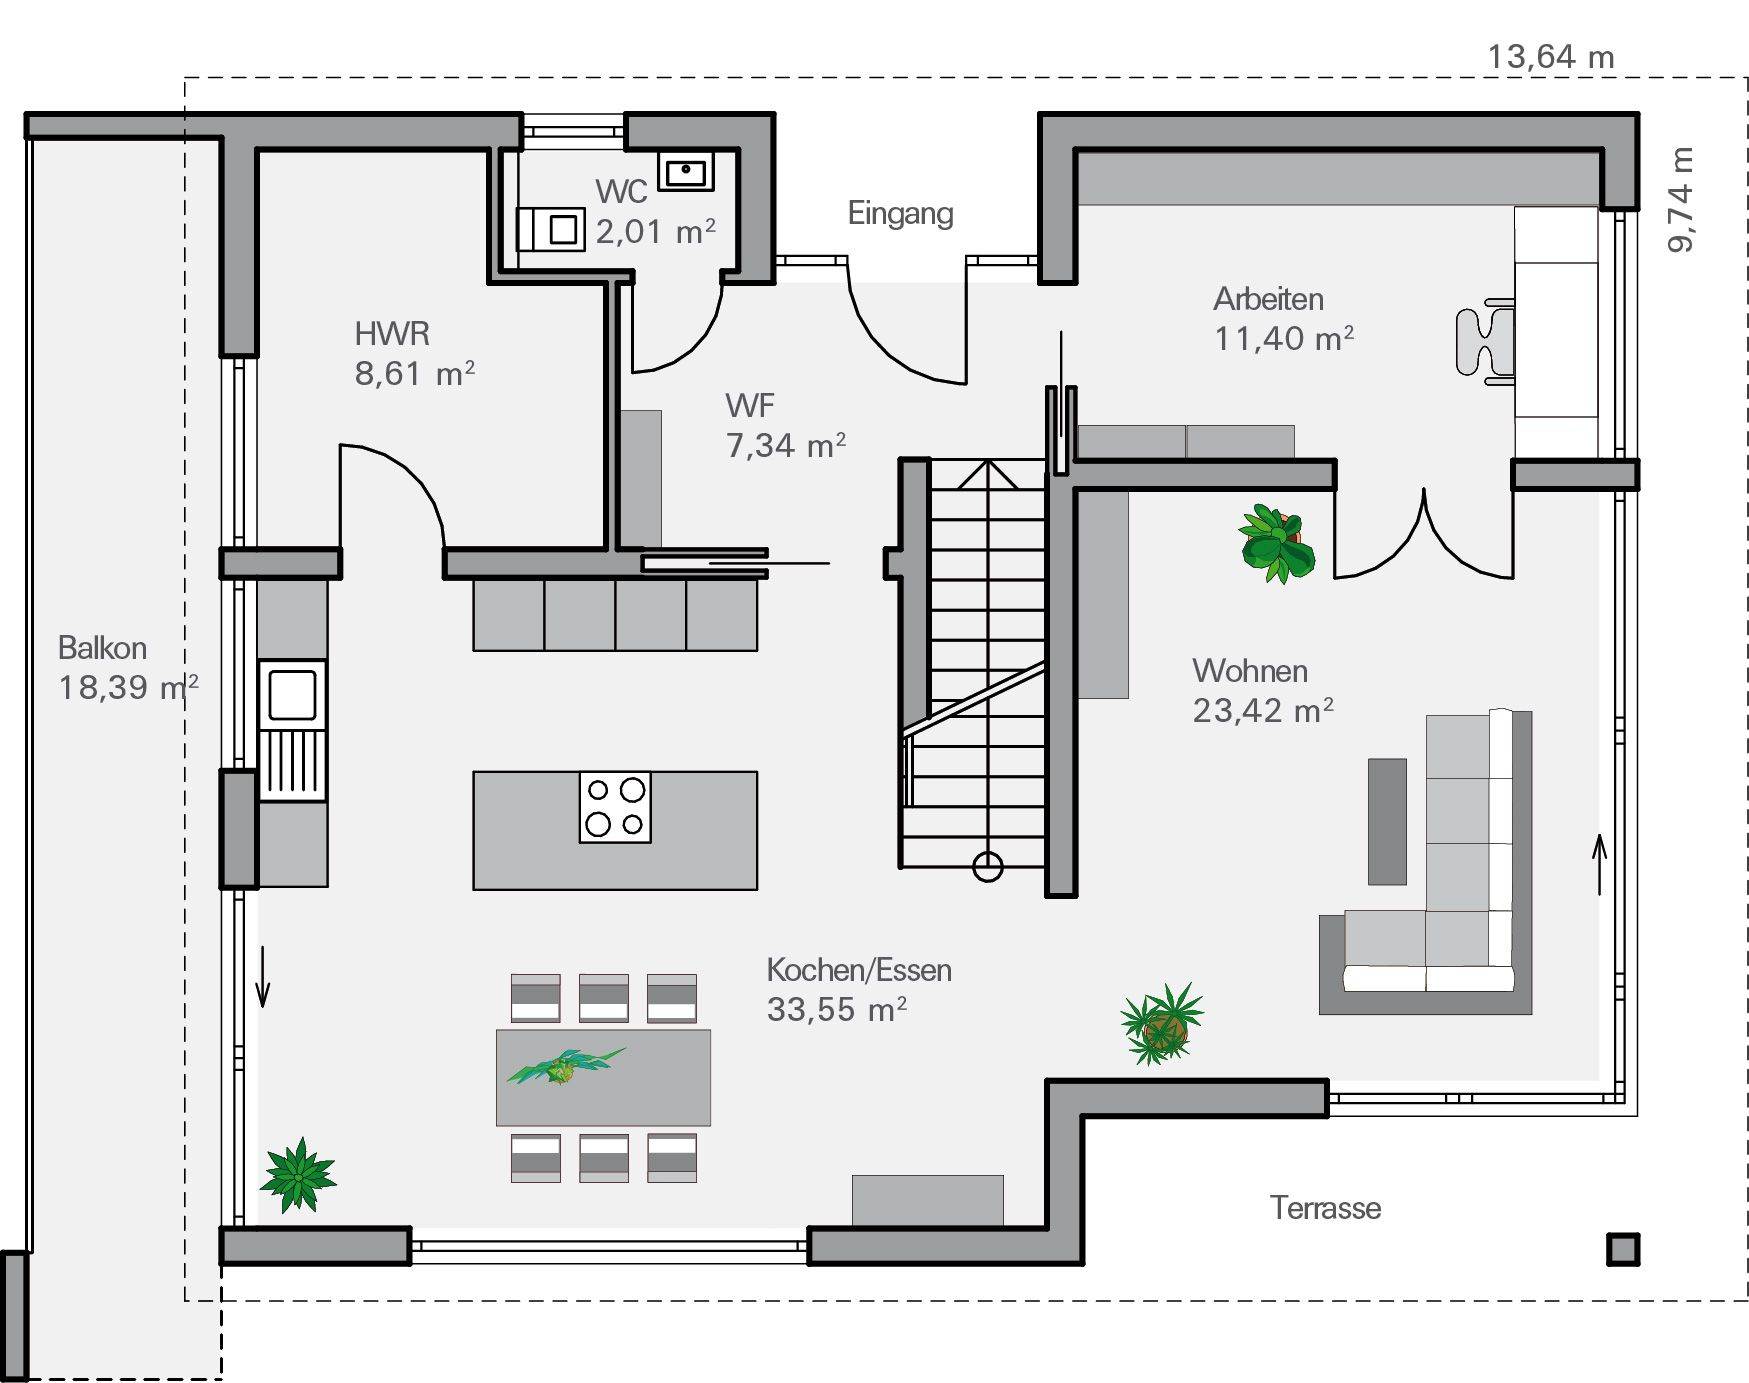 sonnleitner haus münchen grundriss 1000+ images about Plan our home